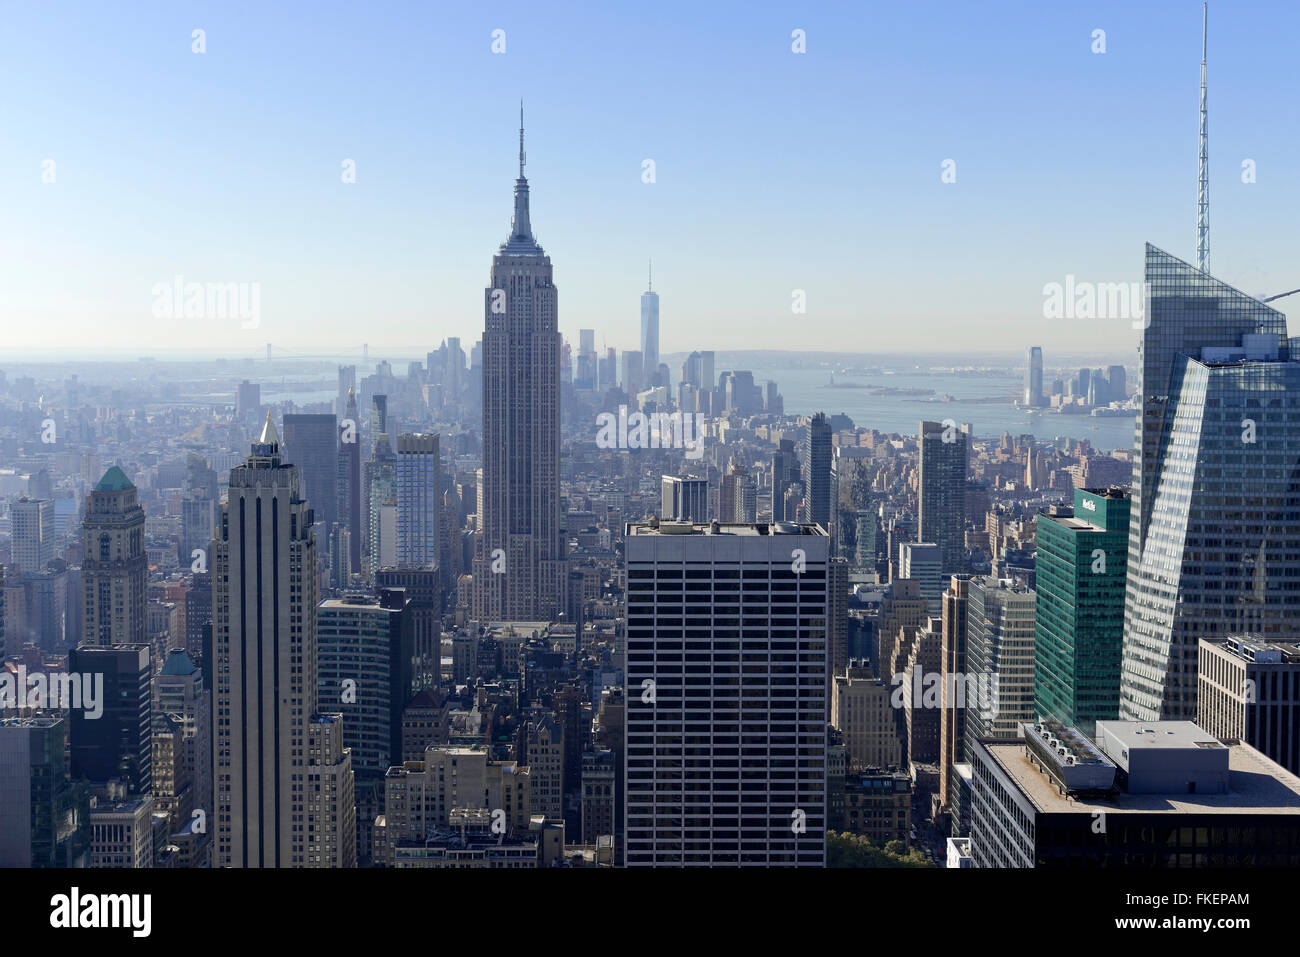 View of Downtown Manhattan and the Empire State Building as seen from Rockefeller Center, Manhattan, New York City, - Stock Image